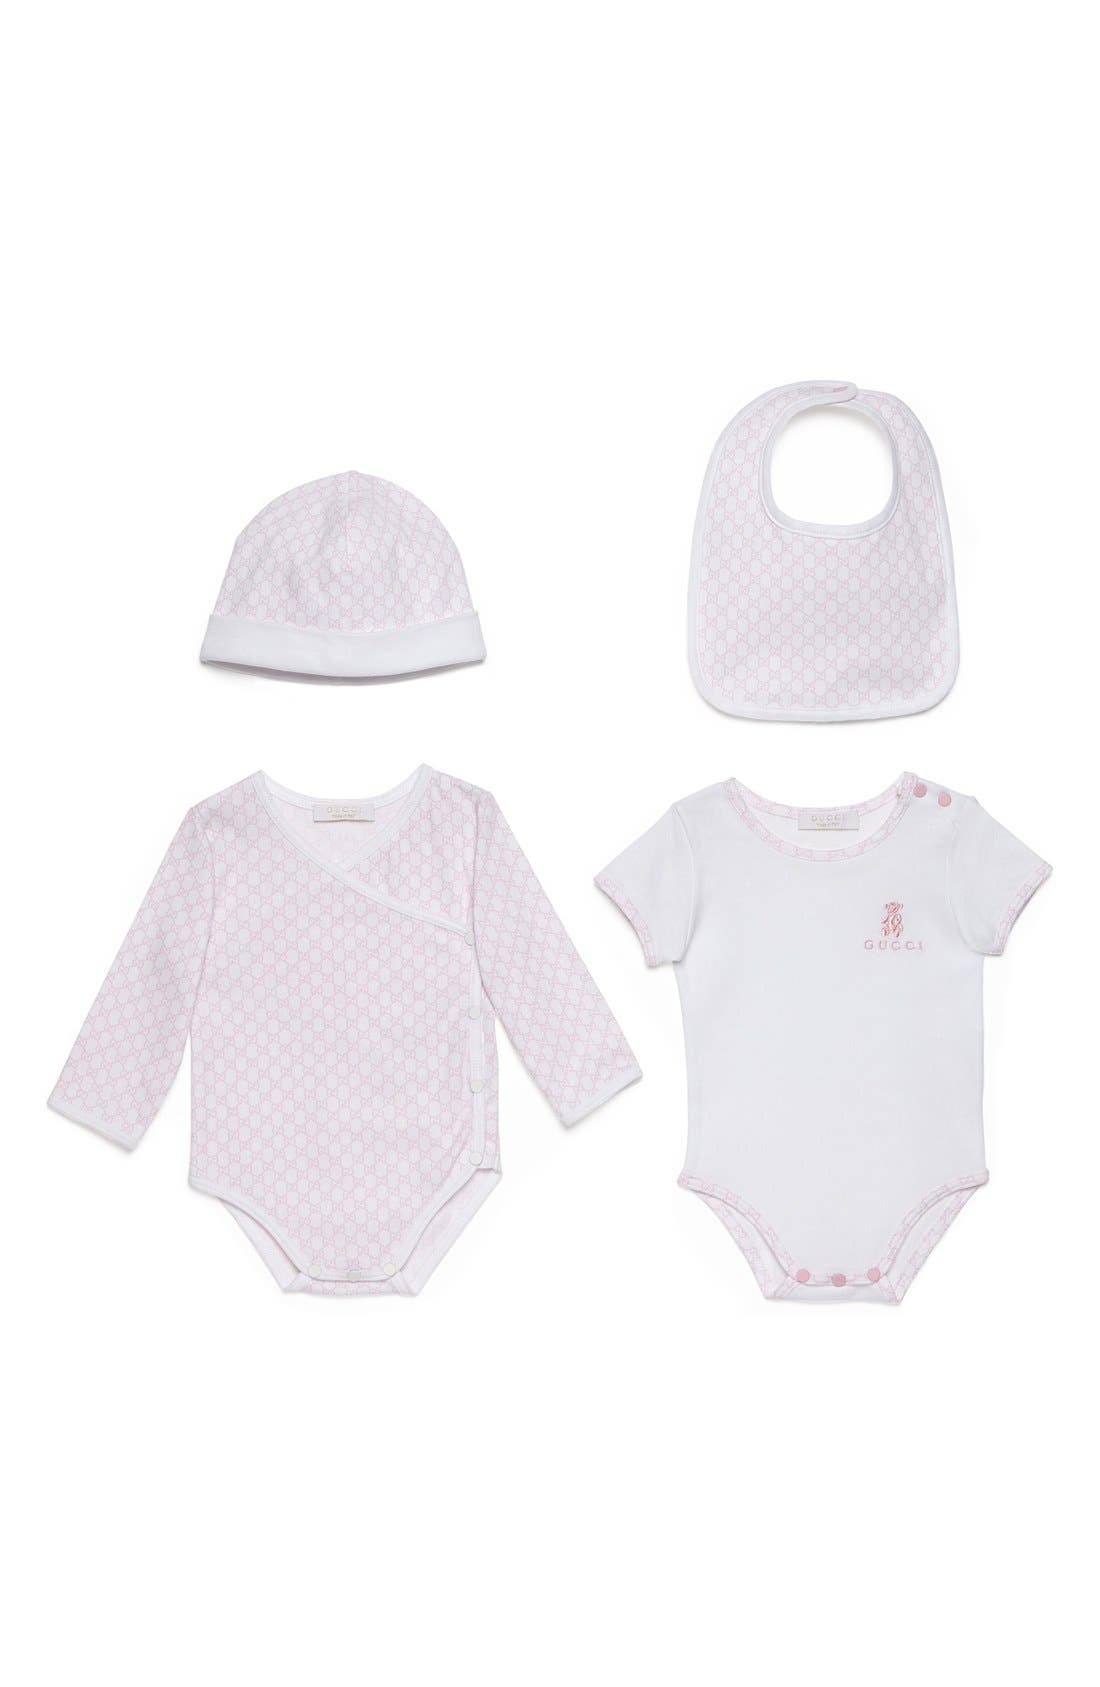 Short Sleeve Bodysuit, Long Sleeve Bodysuit, Hat & Bib Set,                         Main,                         color, Pink